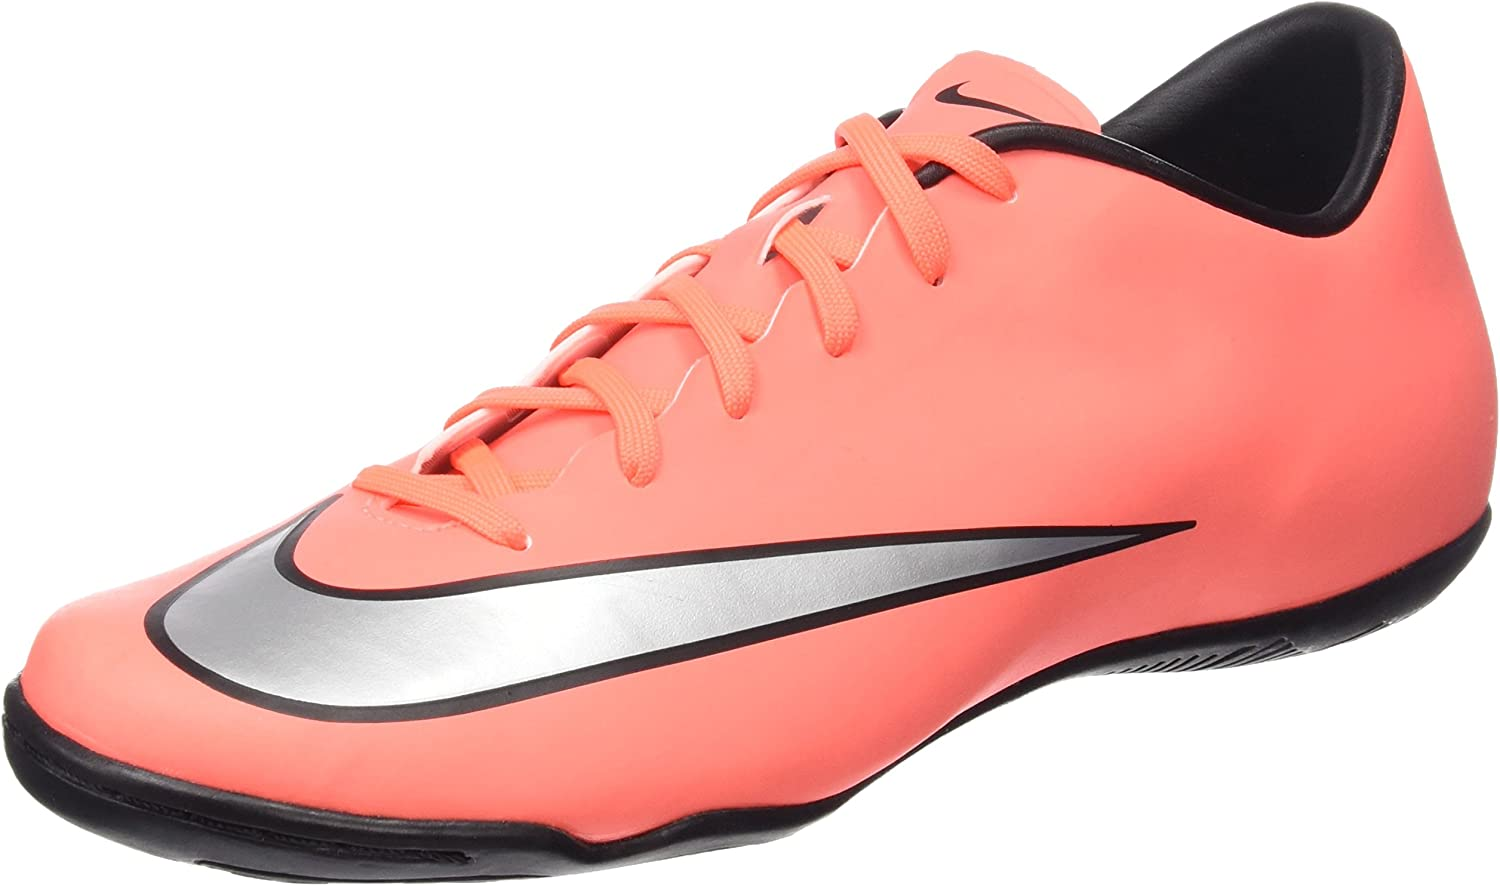 Nike Men's's Mercurial Victory V Ic Football Boots